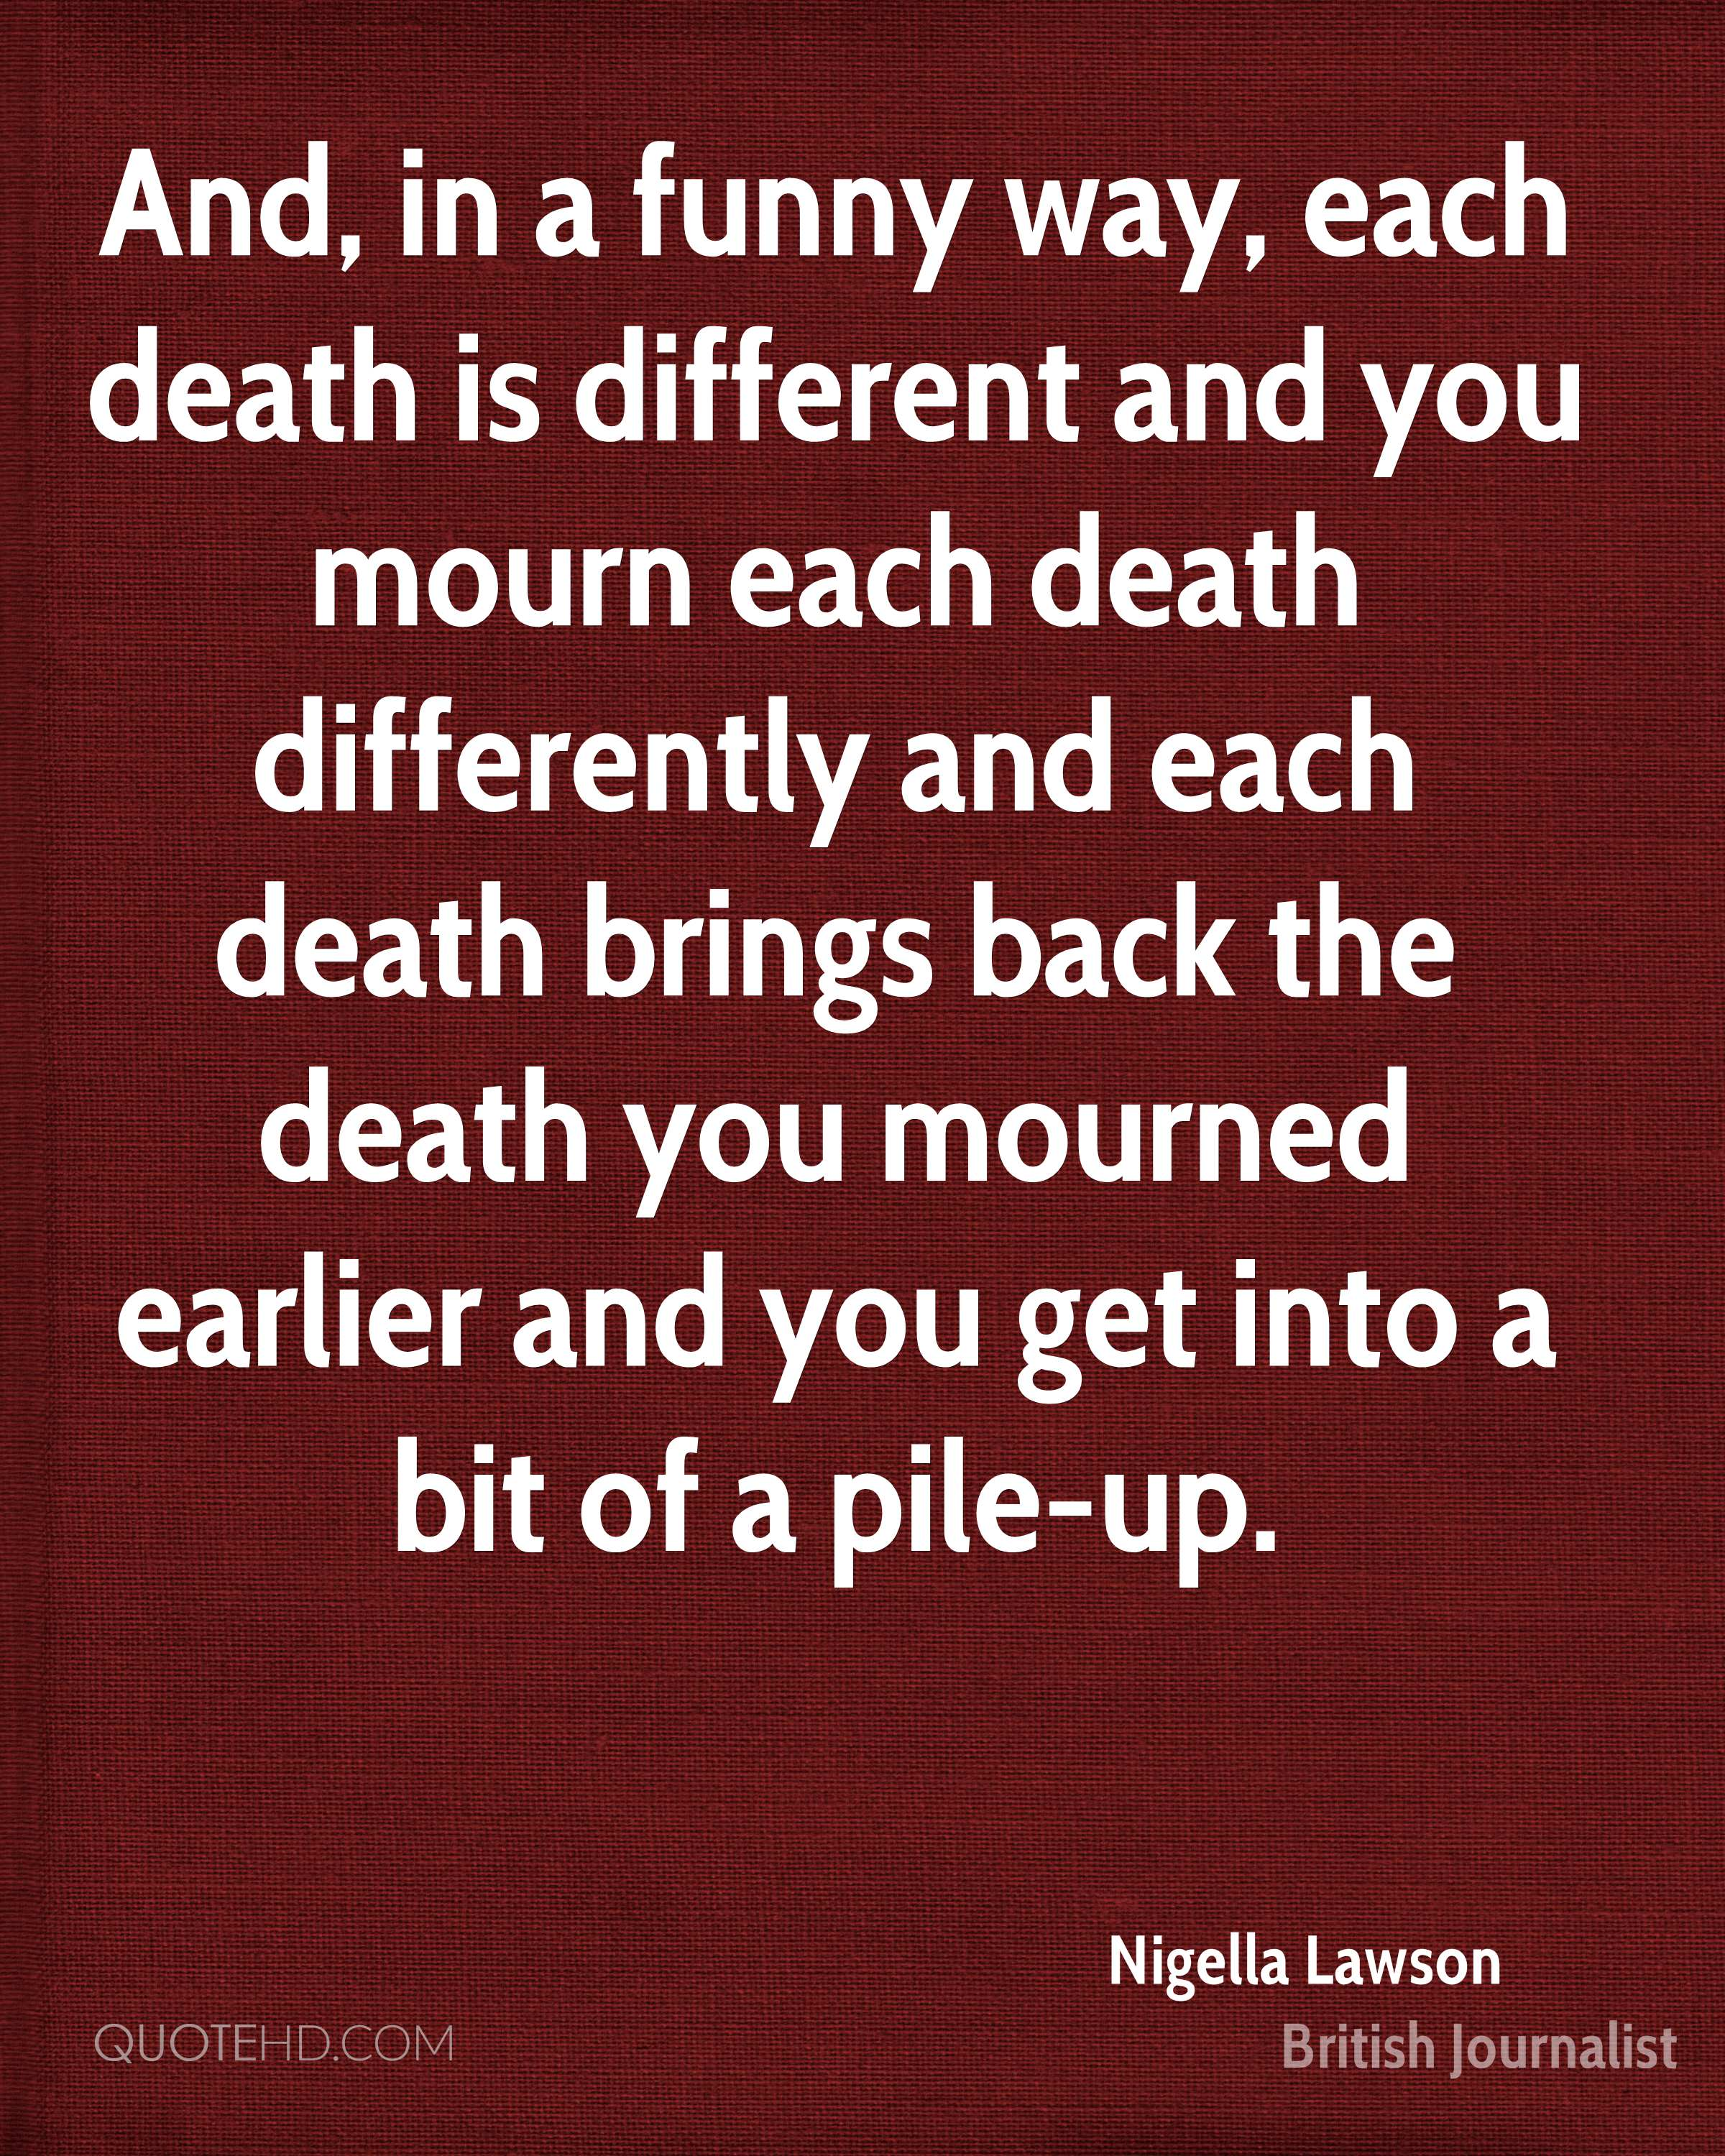 And, in a funny way, each death is different and you mourn each death differently and each death brings back the death you mourned earlier and you get into a bit of a pile-up.